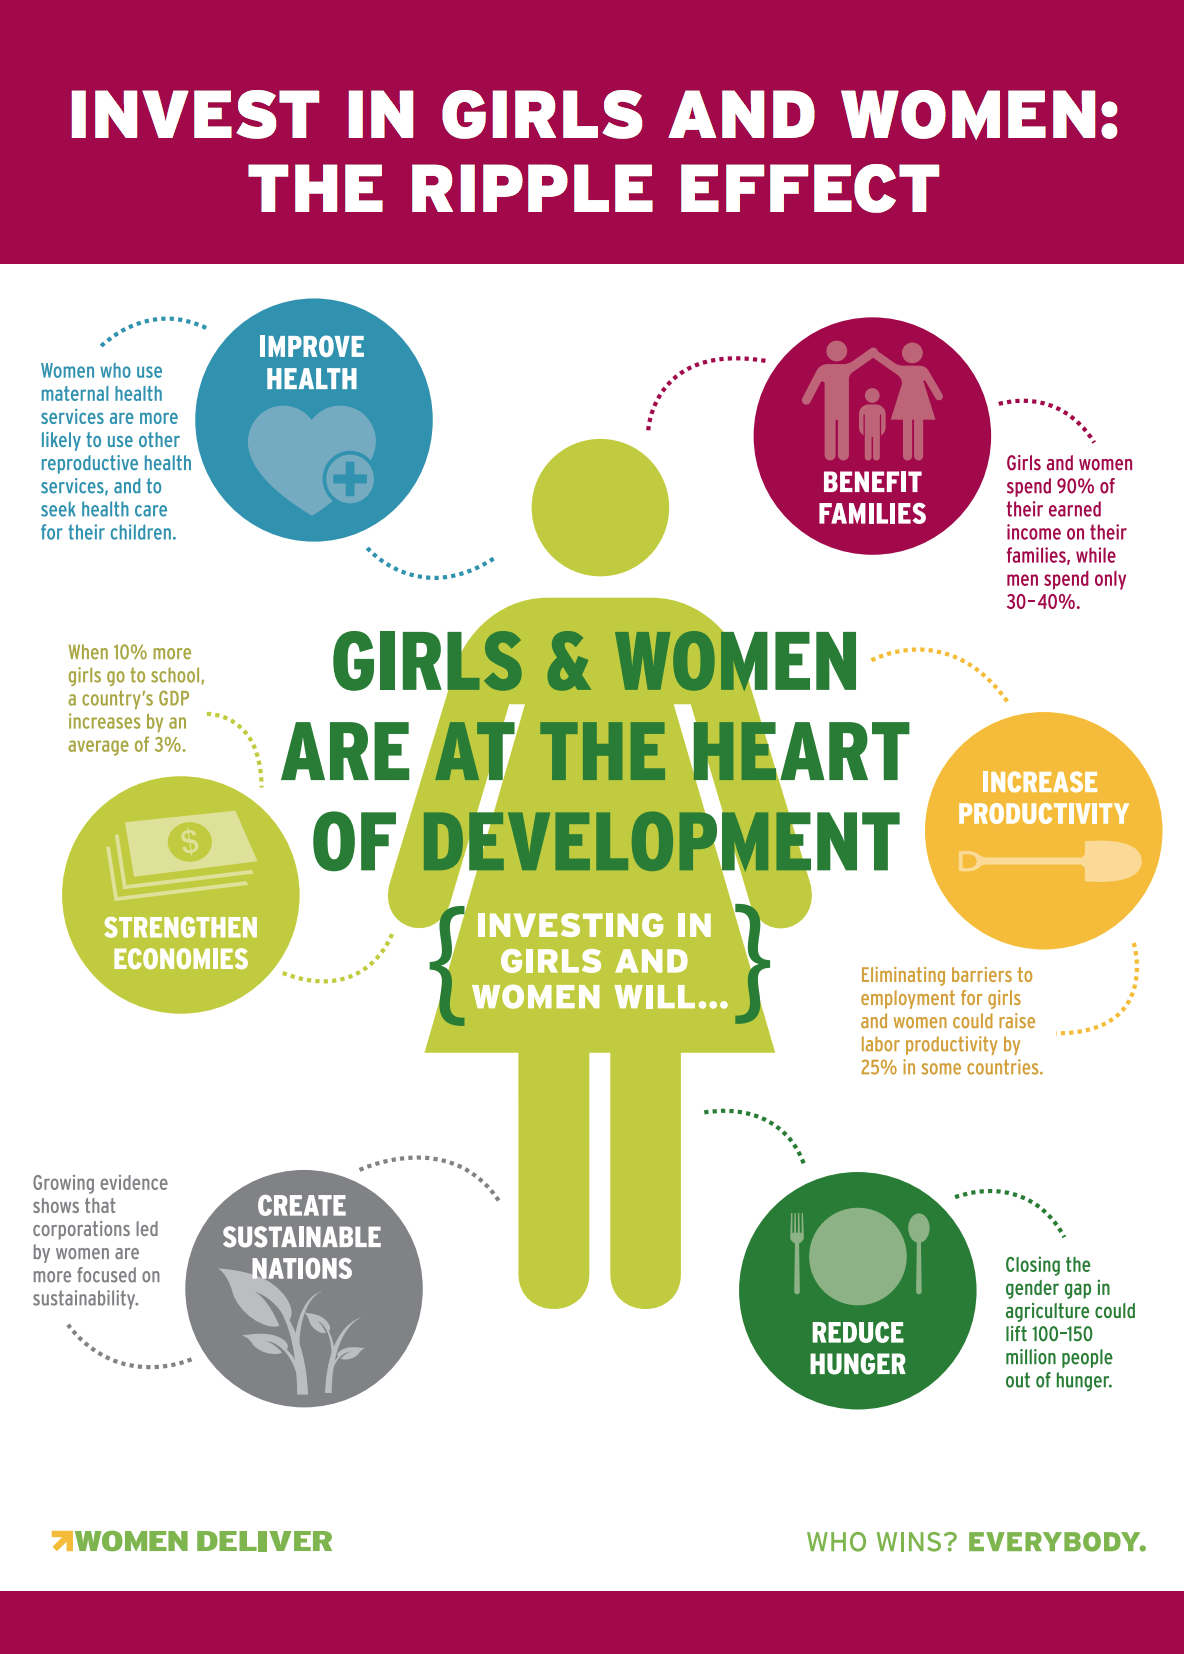 Girls and women spend 90% of their earned income on their families, while men spend only 30-40% ( UNAC, 2012 ) Eliminating barriers to employment for girls and women could raise labor productivity by 25% in some countries (I MF, 2012 ) Closing the gender gap in agriculture could lift 100-150 million people out of hunger ( FAO, 2011 ) Growing evidence shows that corporations led by women are more focused on sustainability ( UC Berkeley Haas School of Business, 2012 ) When 10% more girls go to school, a country's GDP increases by an average of 3% ( USAID, 2011 )